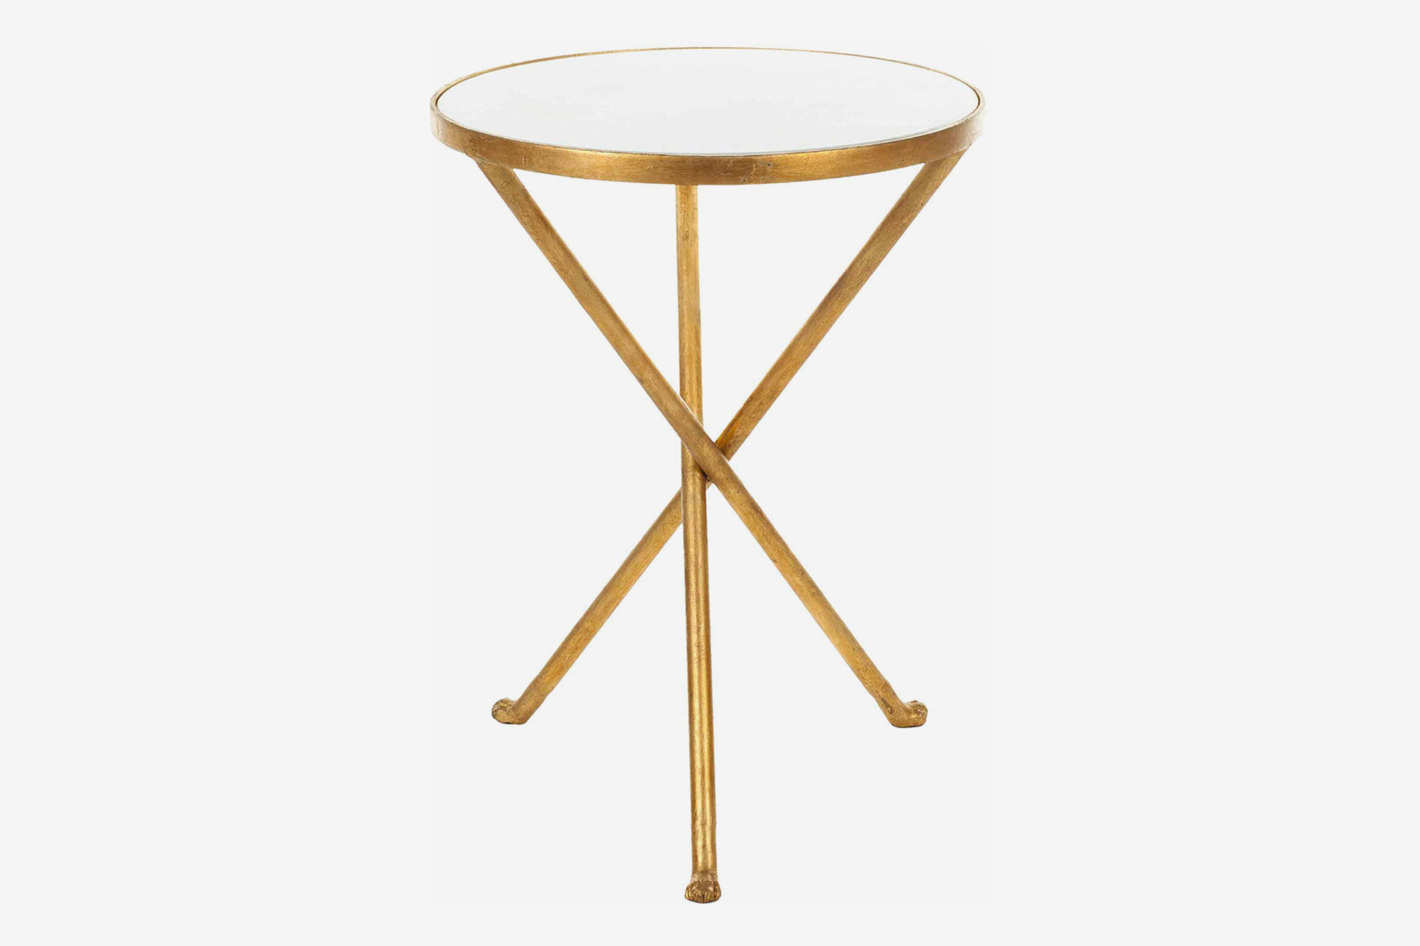 saint laurent coach north dvf metal eyelet accent table safavieh marcie nautical ceiling fans with lights black glass and chrome side cupcake carrier target hammary end oval patio